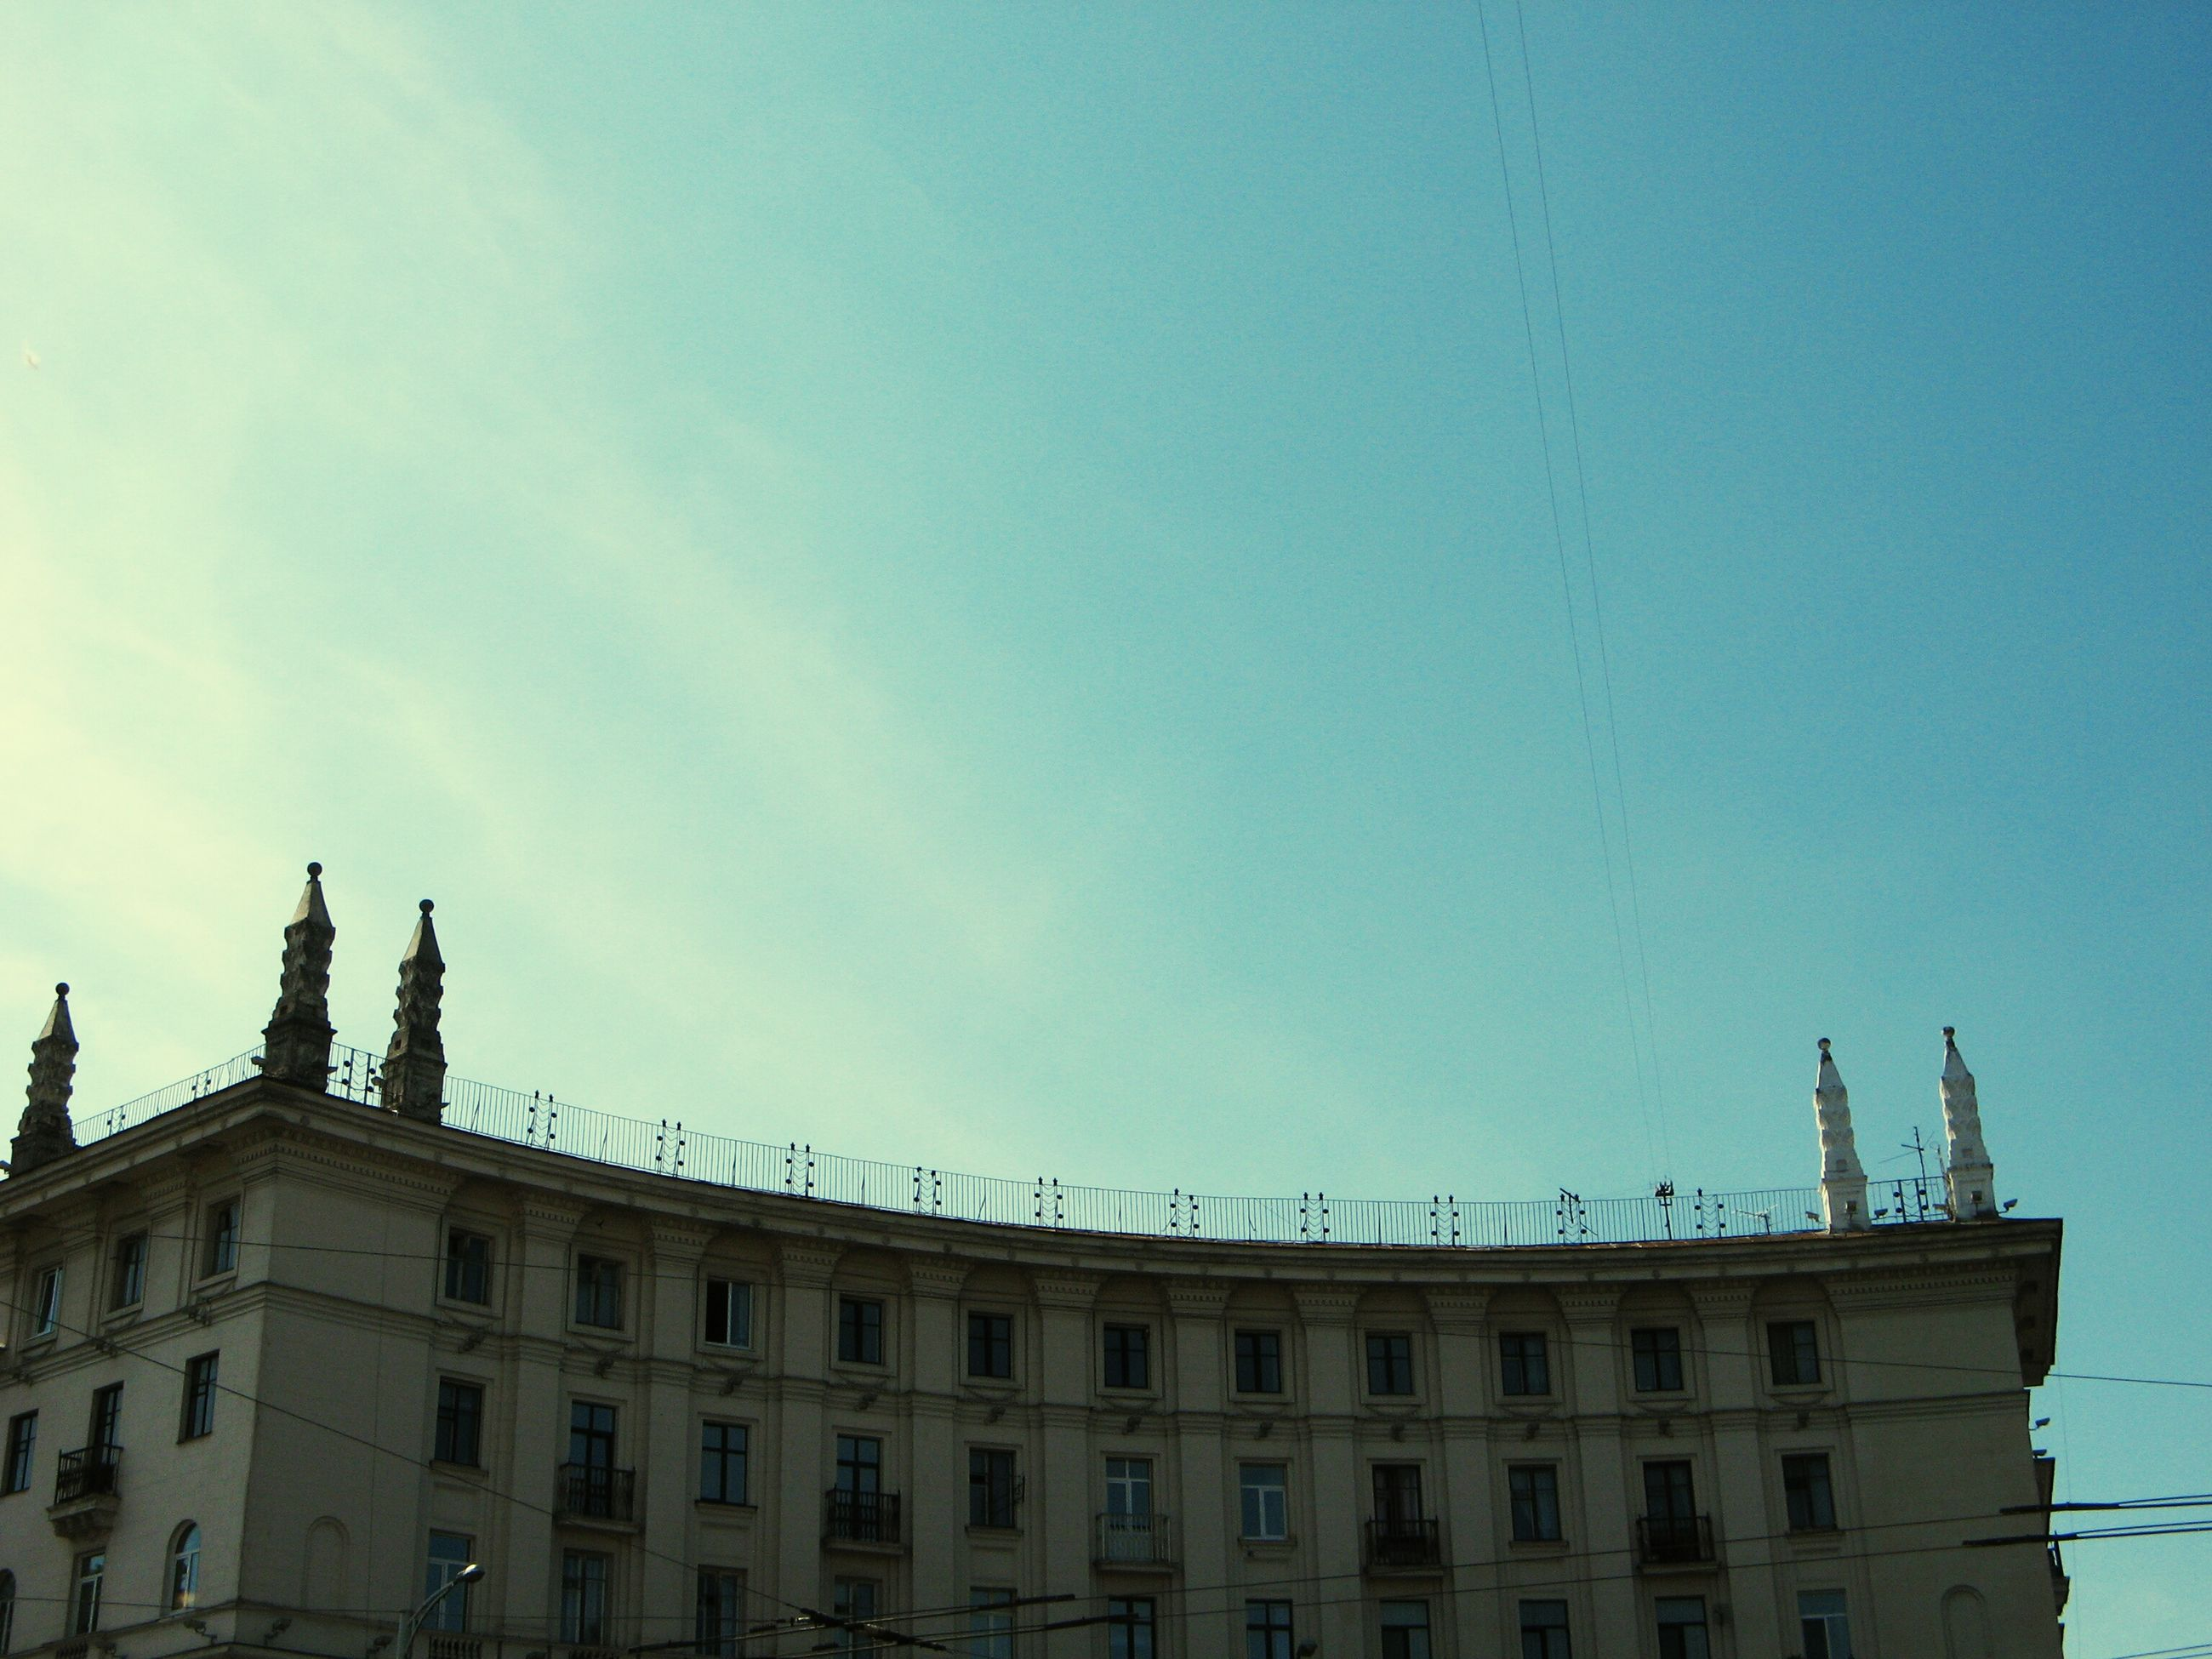 architecture, built structure, low angle view, building exterior, sky, sculpture, statue, art and craft, copy space, art, high section, history, outdoors, building, blue, travel destinations, clear sky, city, famous place, human representation